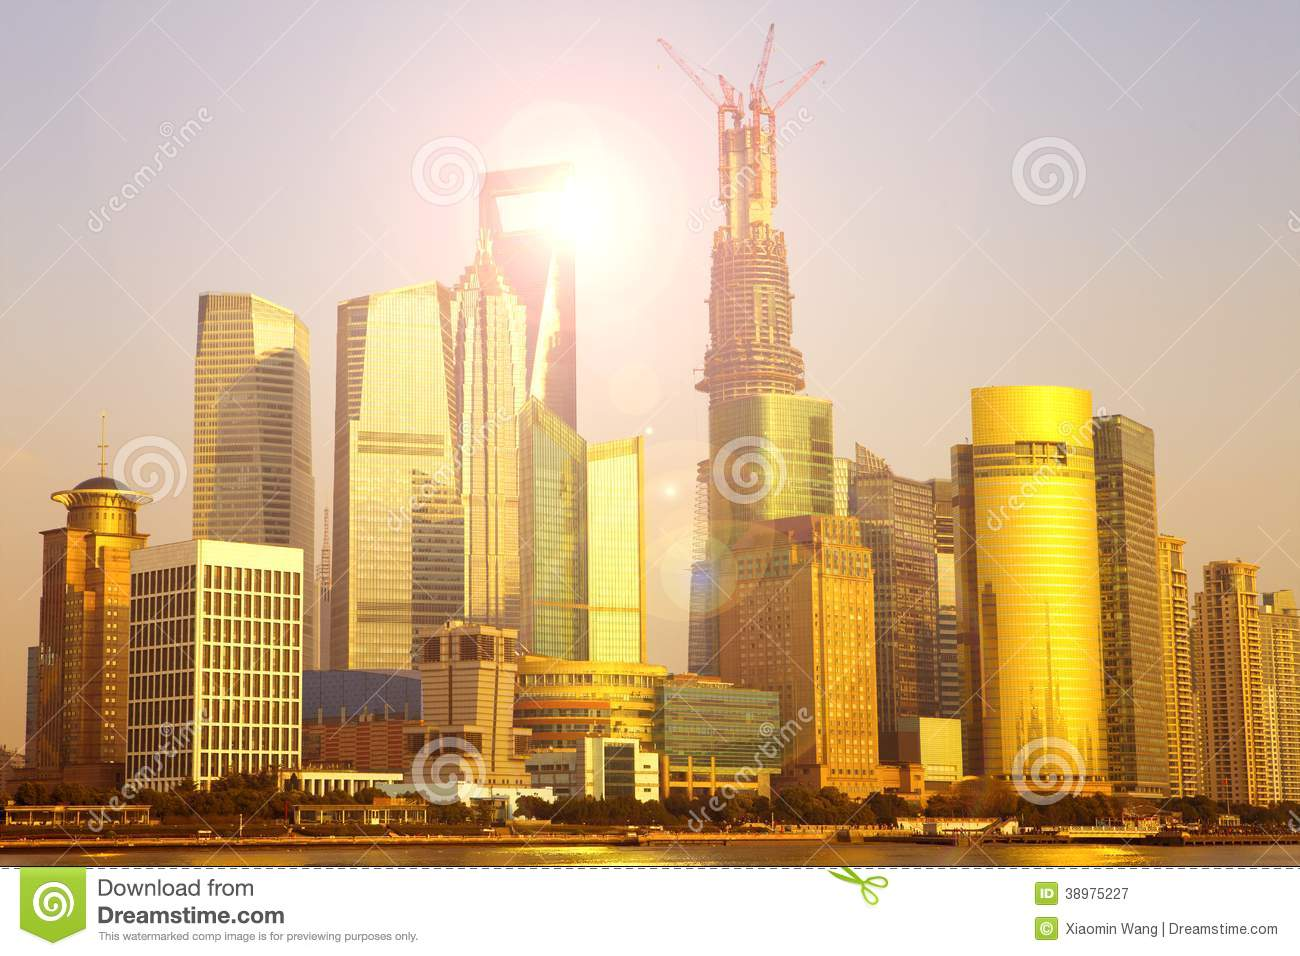 a description of the city of shanghai Originally, shanghai was a seaside fishing village and with time, became china's most prominent city by the 20th century, shanghai became the center of popular culture, intellectual discourse and political intrigue in the republic of china.